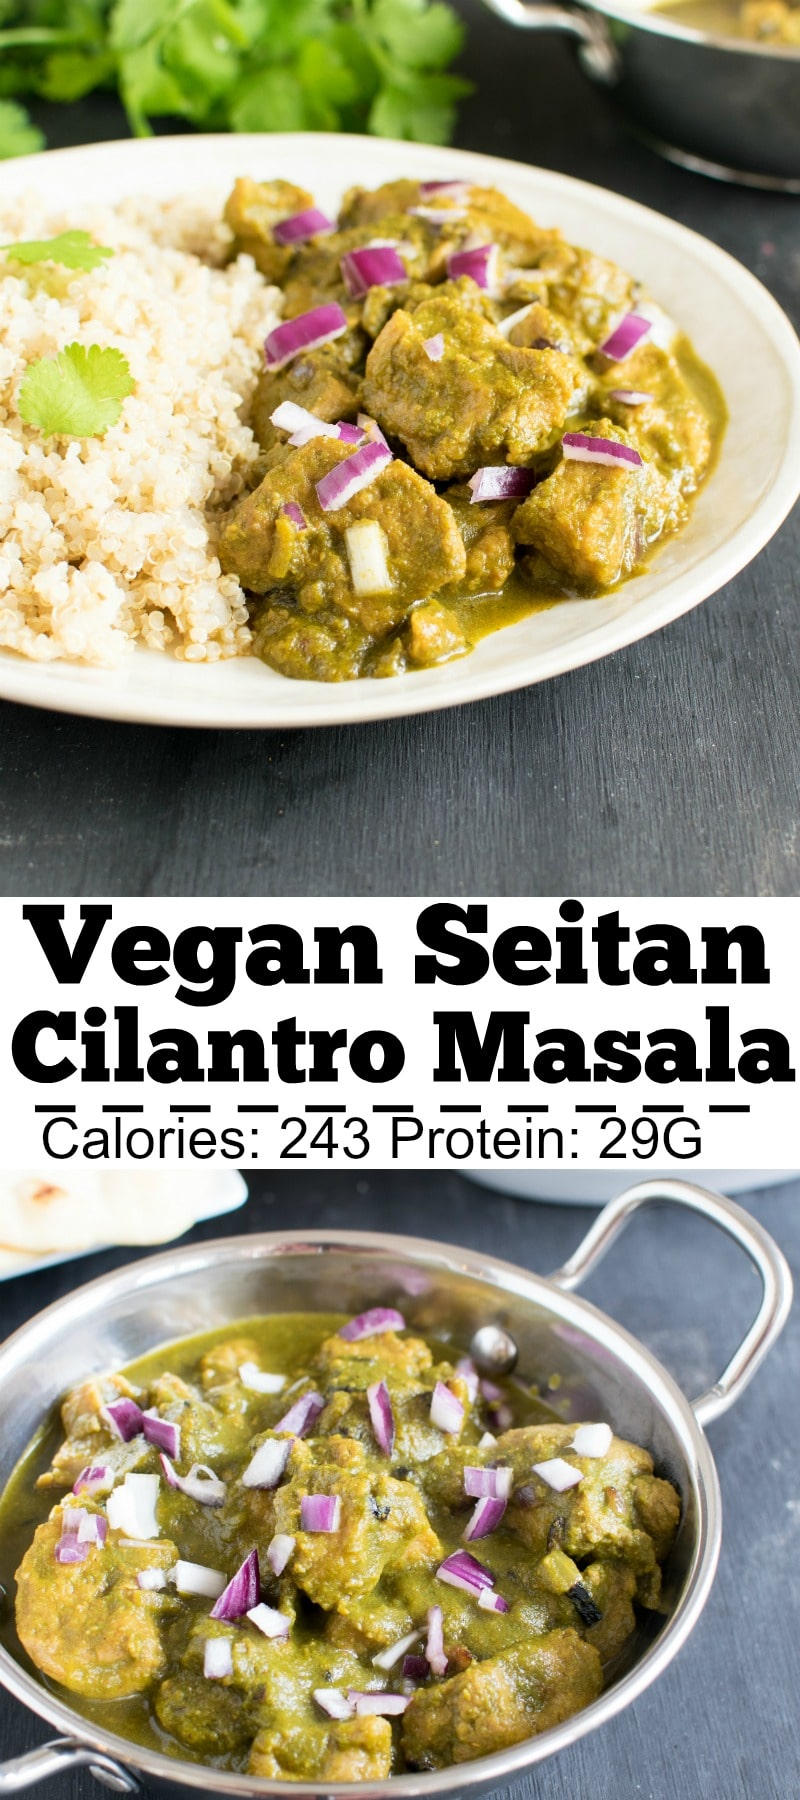 Vegan Seitan Cilantro Masala is a delectable and flavorful entree with a medley of Indian spices and vegan protein.My entire family enjoyed this entrée. Vegan Seitan Cilantro Masala pairs well with boiled quinoa/steamed rice/ naan and a side onion salad. Even meat lovers would love this entrée and be joyous about vegan dishes | kiipfit.com